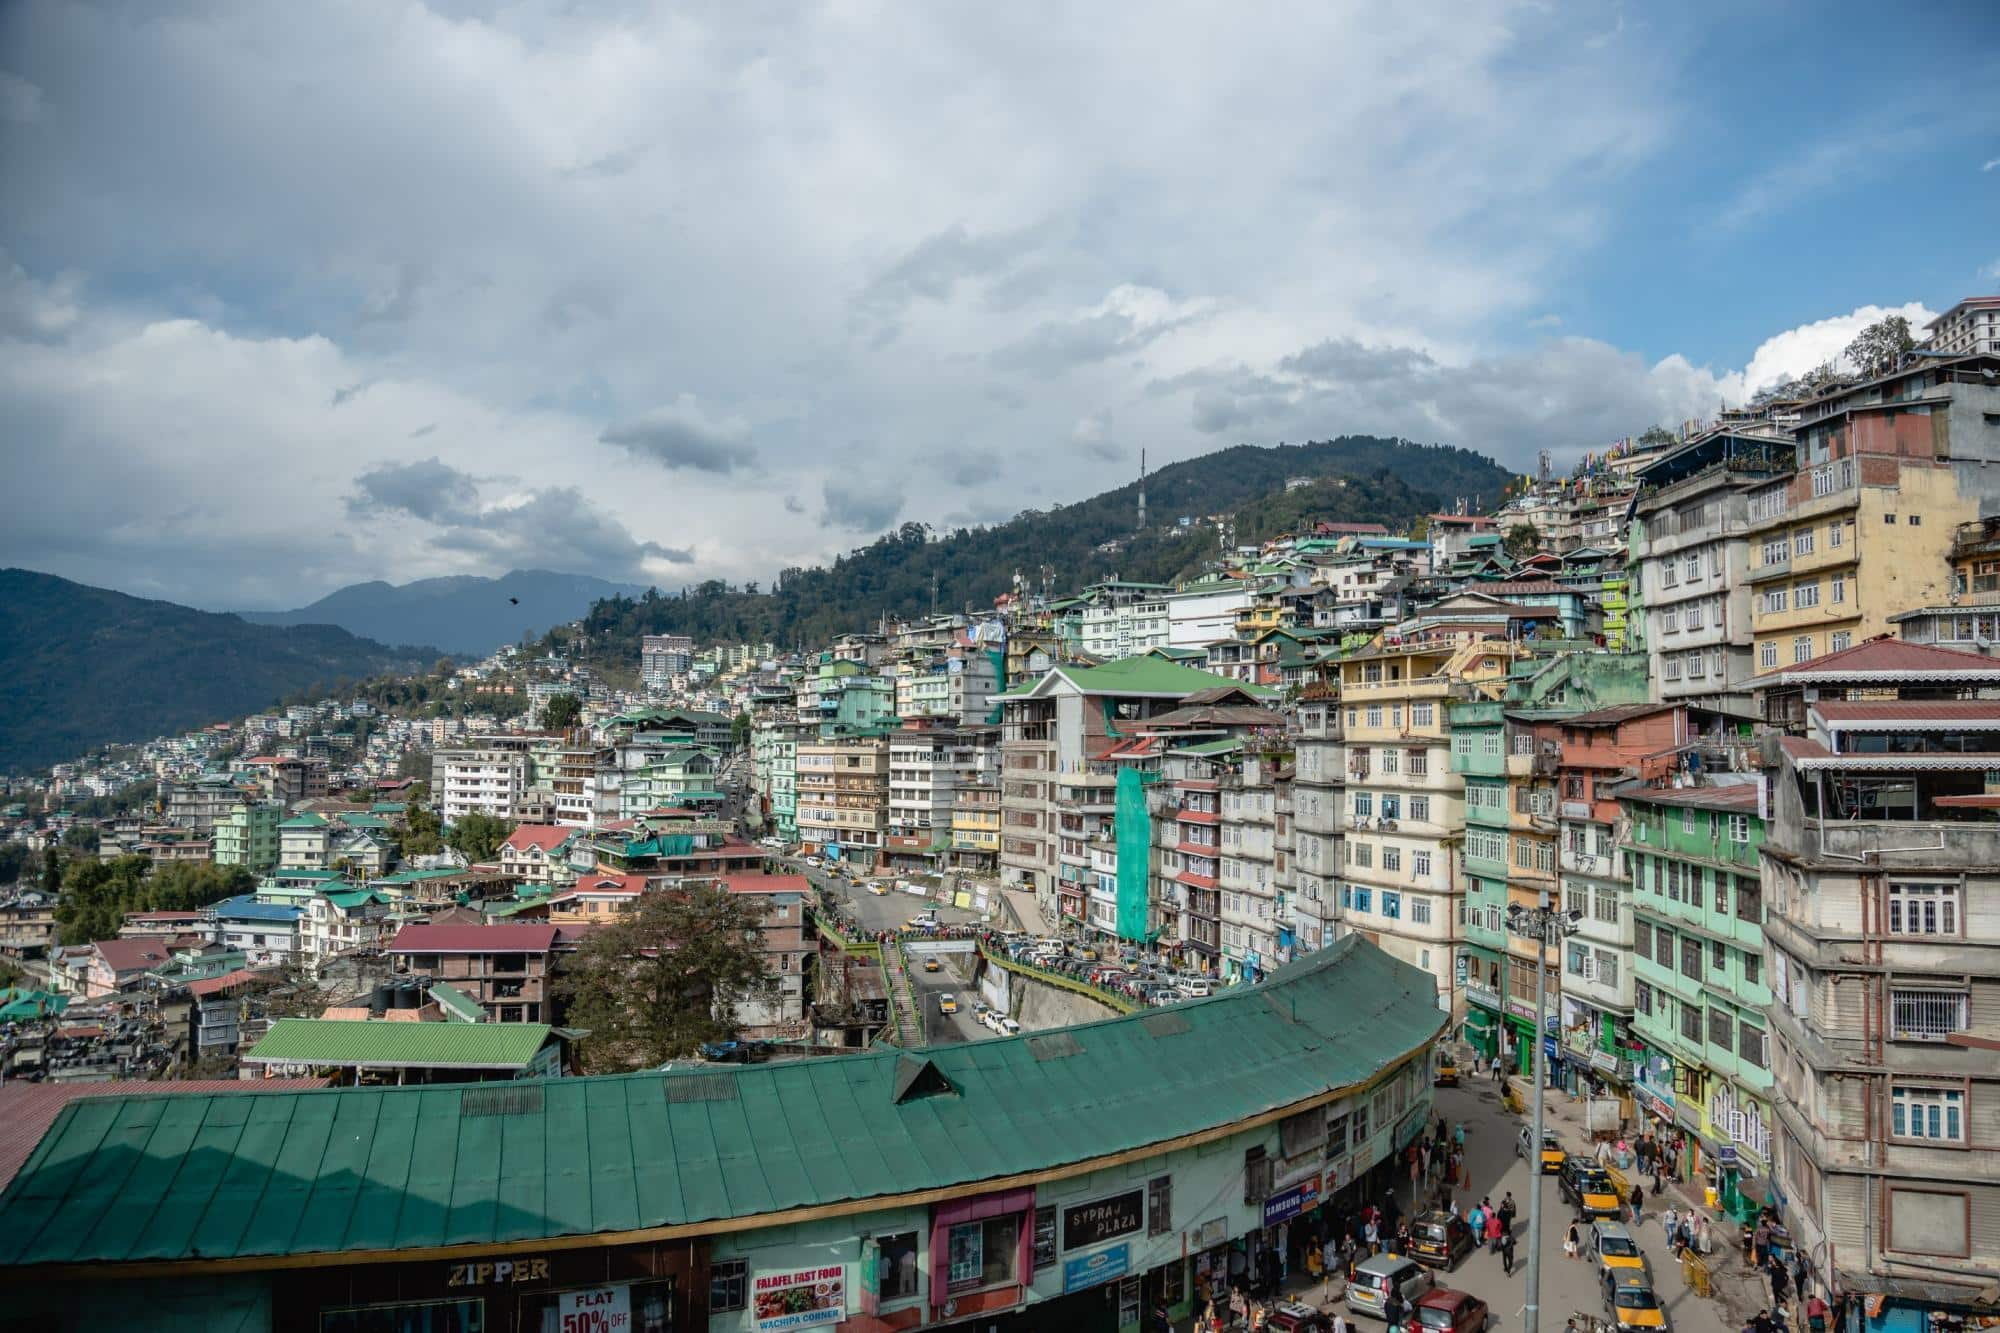 Sikkim Travel Guide - 5 Top Tourist Attractions to Explore